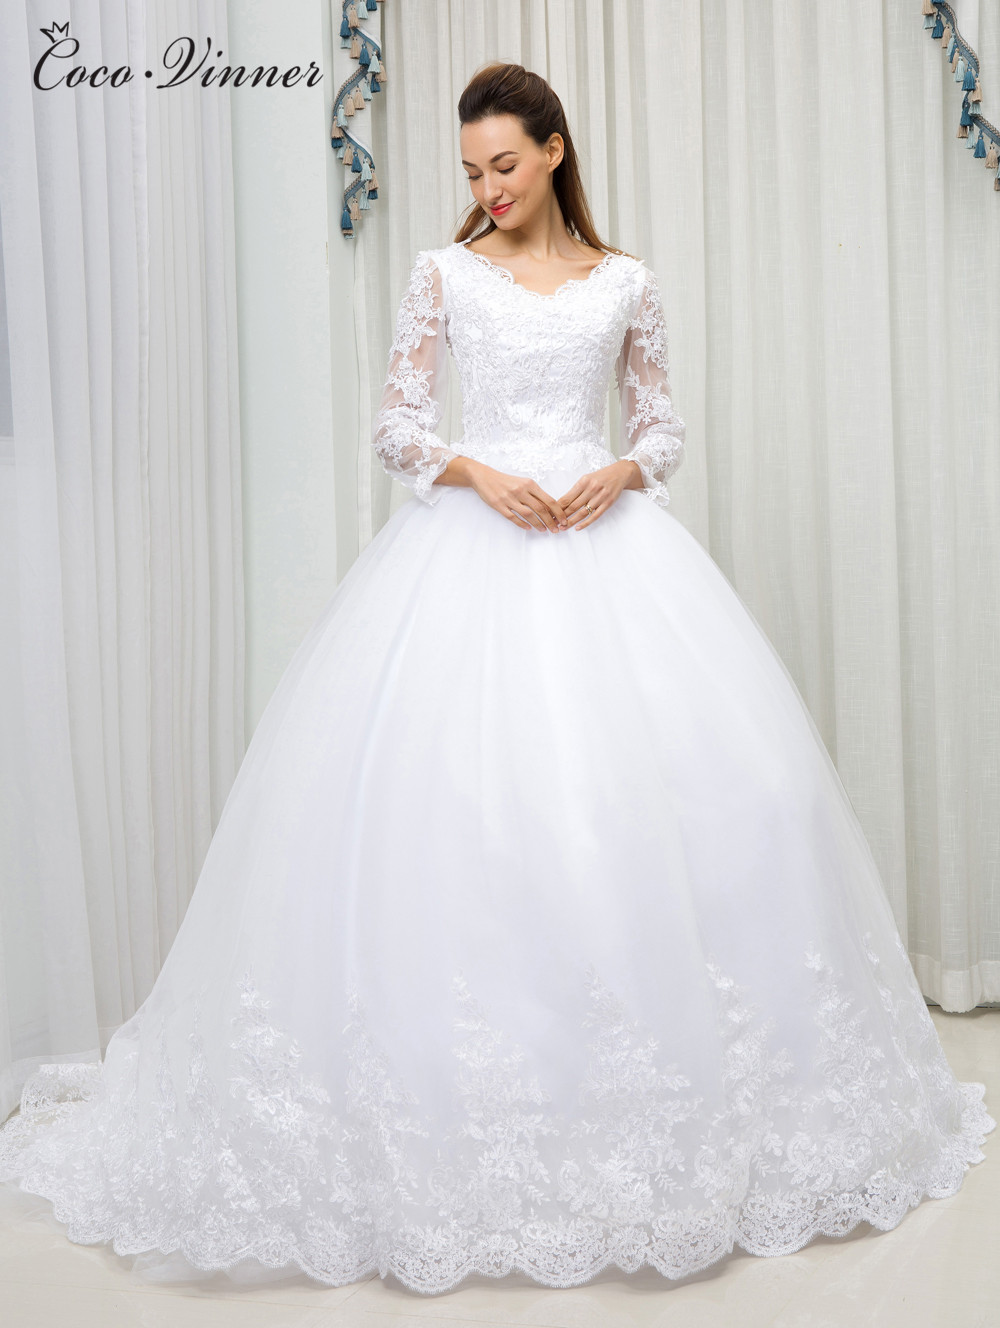 C.V Arab Ball Gown Princess Wedding Dress 2018 New Long Sleeve V neck Lace Up Pearls beads Lace Embroidery Wedding Gowns W0101